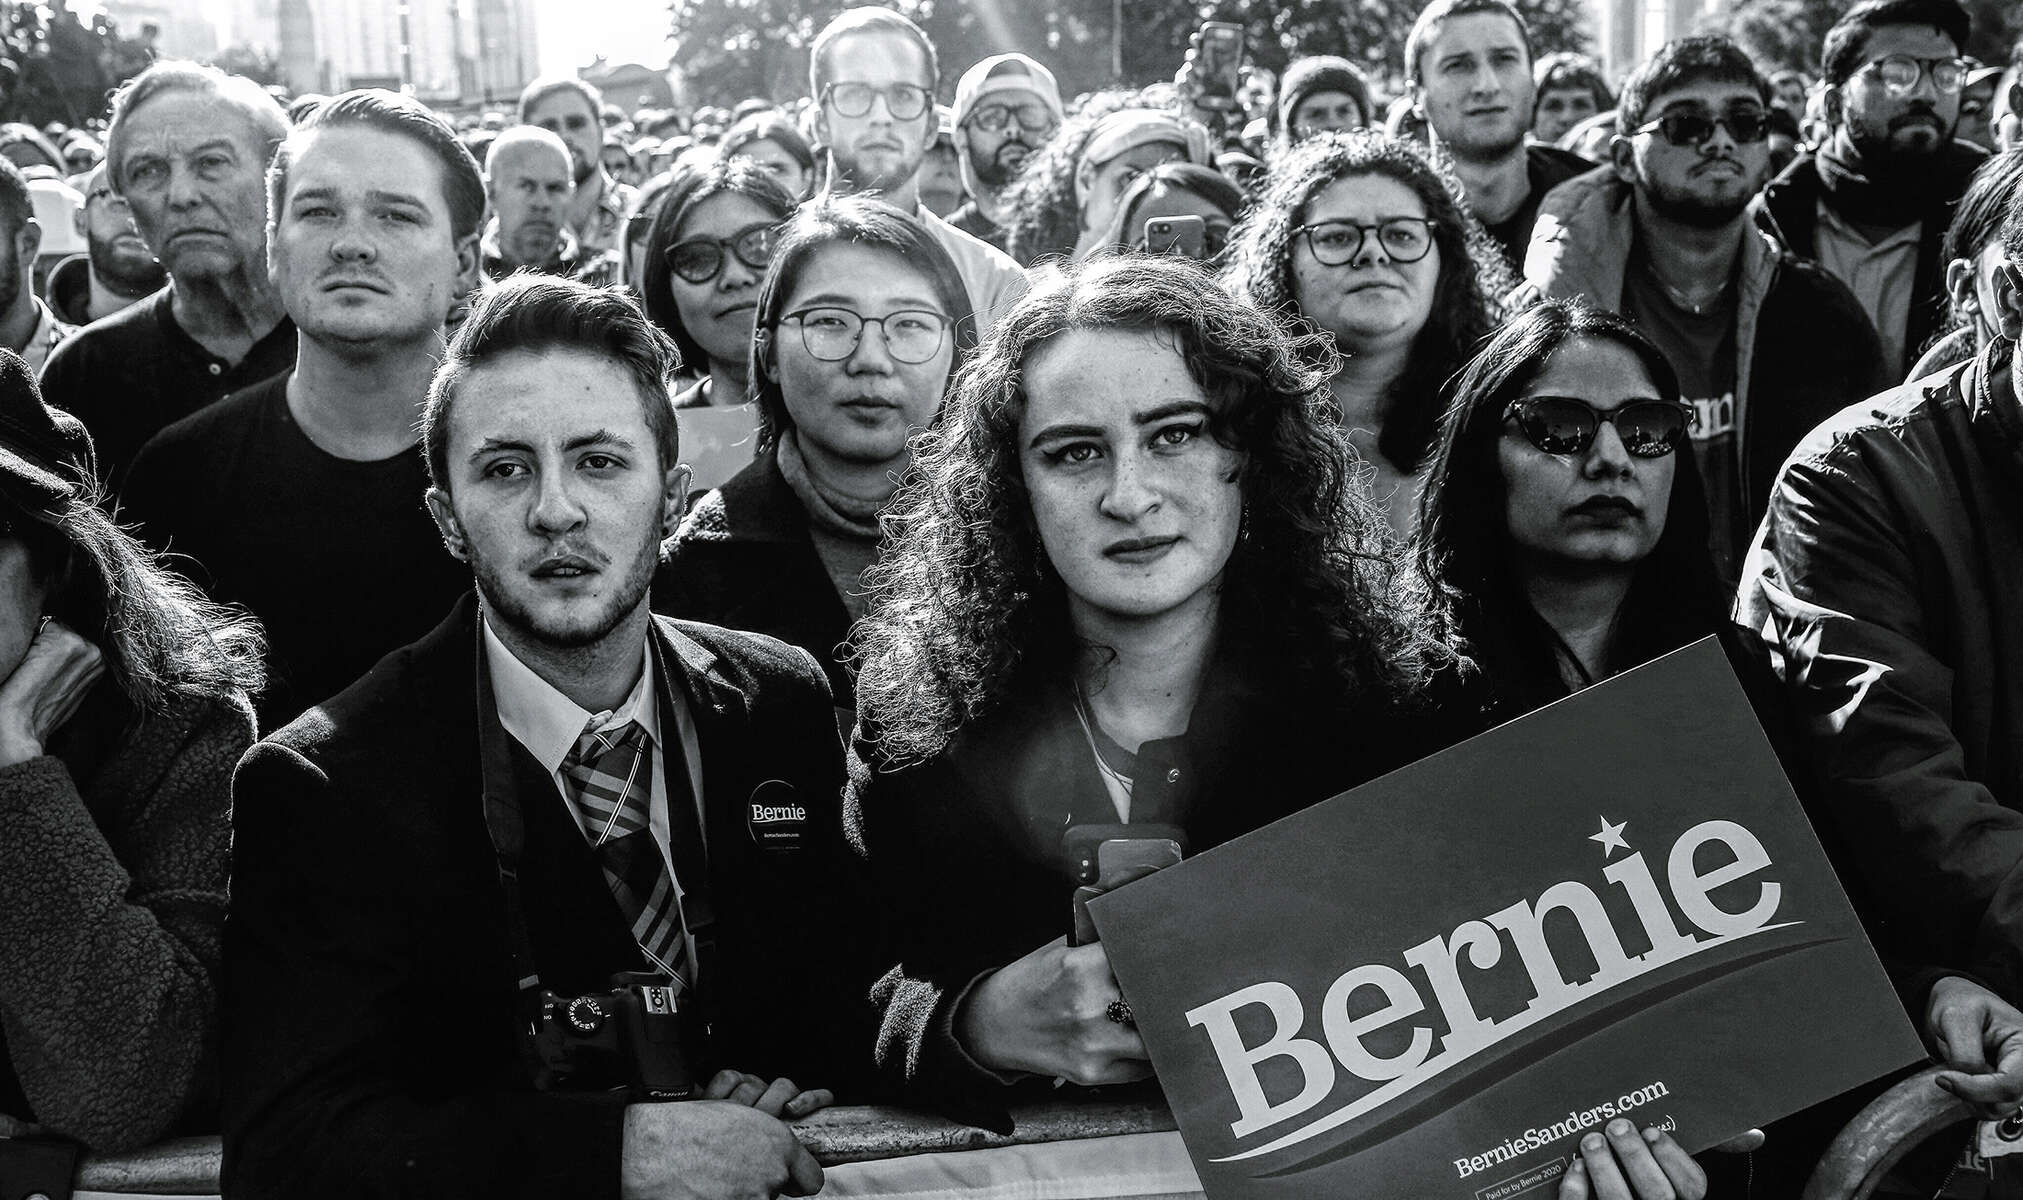 An audience at a {quote}Bernie's Back{quote} rally listens to U.S. Rep. Alexandria Ocasio-Cortez (D-NY) introduce Democratic U.S. presidential candidate and U.S. Senator Bernie Sanders (I-VT) during a {quote}Bernie's Back{quote} rally at Queensbridge Park in Queens, NY, on October 19, 2019. The rally, at which Representative Alexandria Ocasio-Cortez (D-NY) endorsed Sanders, drew over 20,000 participants and took place shortly after Sanders was hospitalized for a heart attack at the start of the month. (For Reuters)